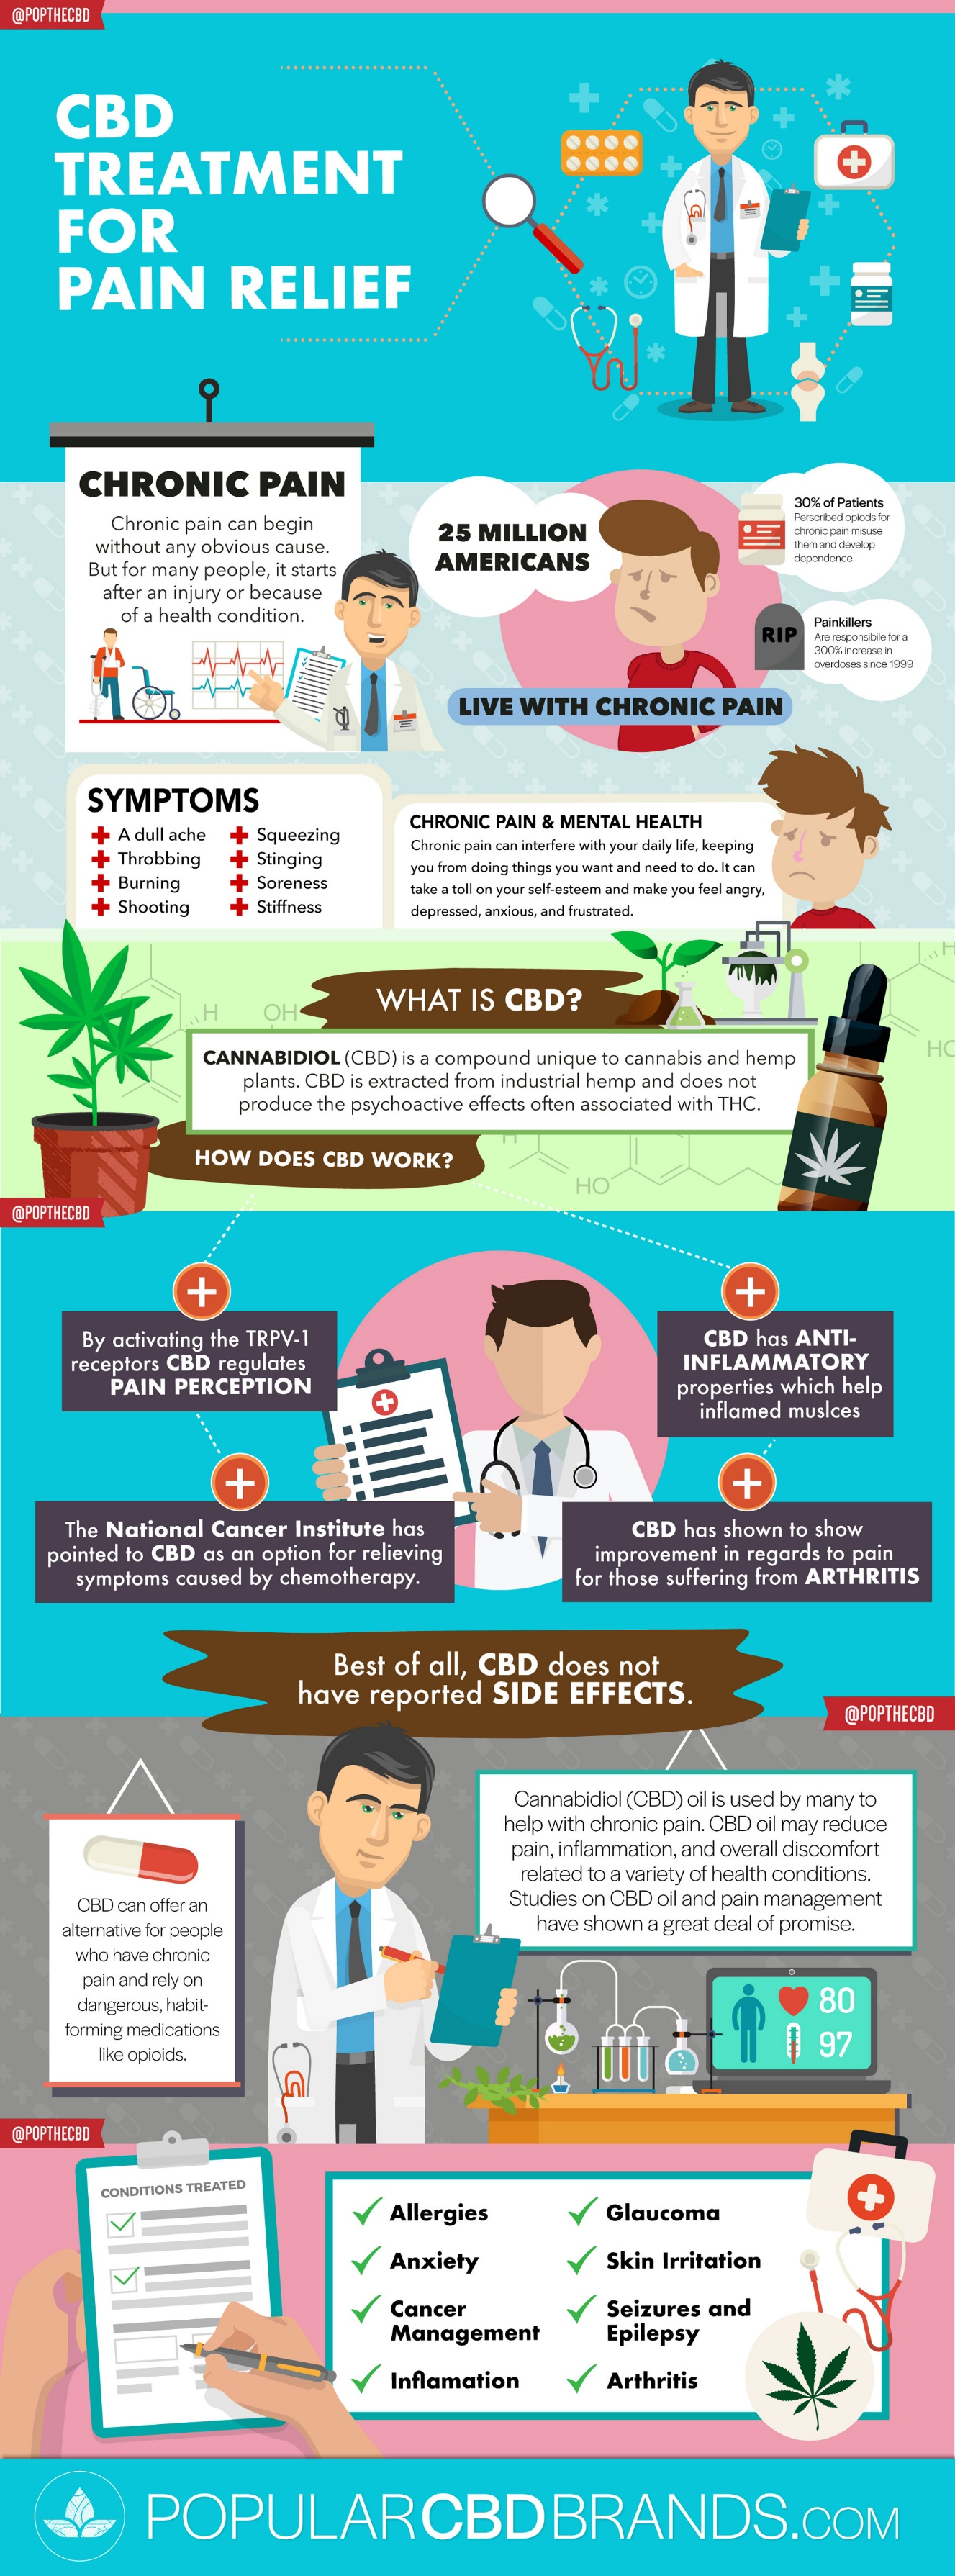 CBD Oil for Pain - What is the Best CBD Oil on the Market for Pain?